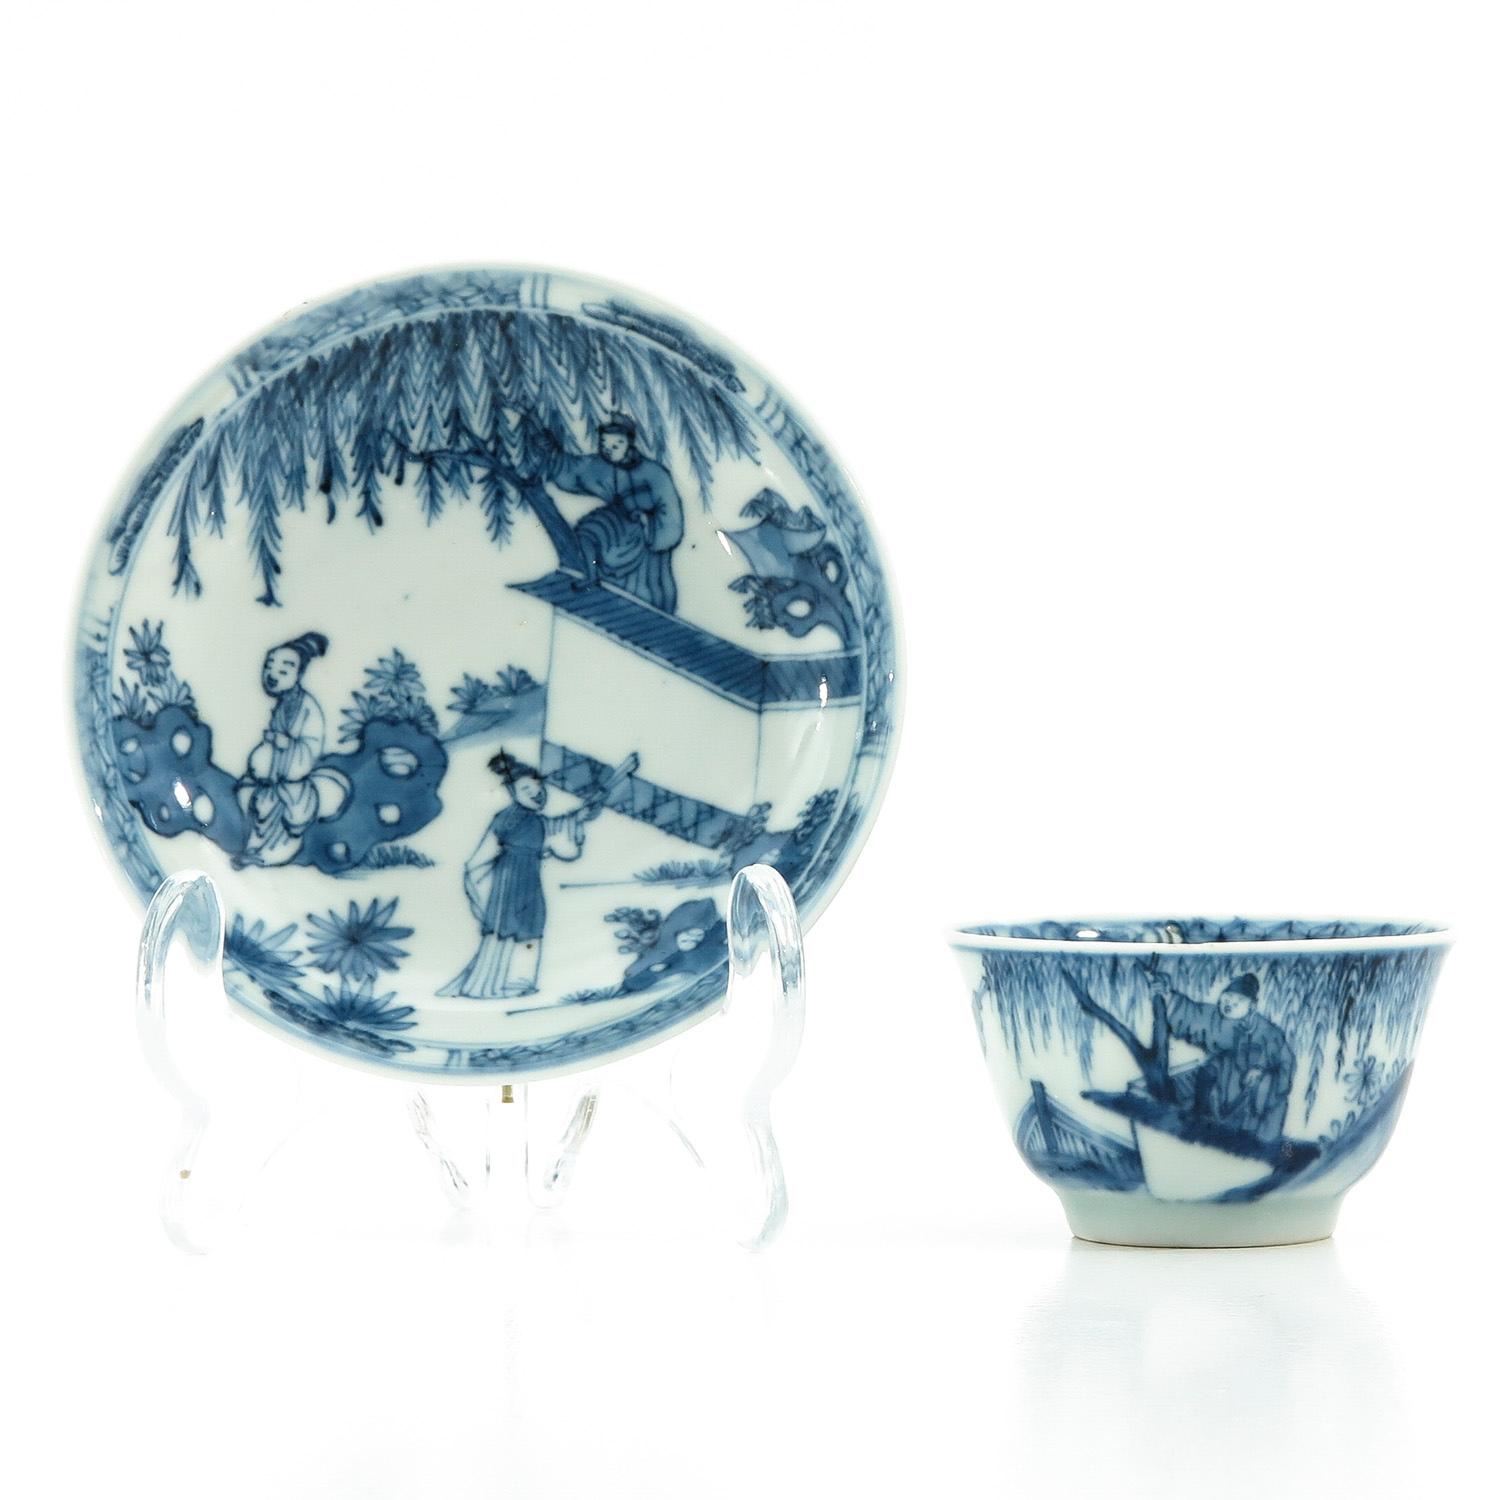 A Blue and White Cup and Saucer